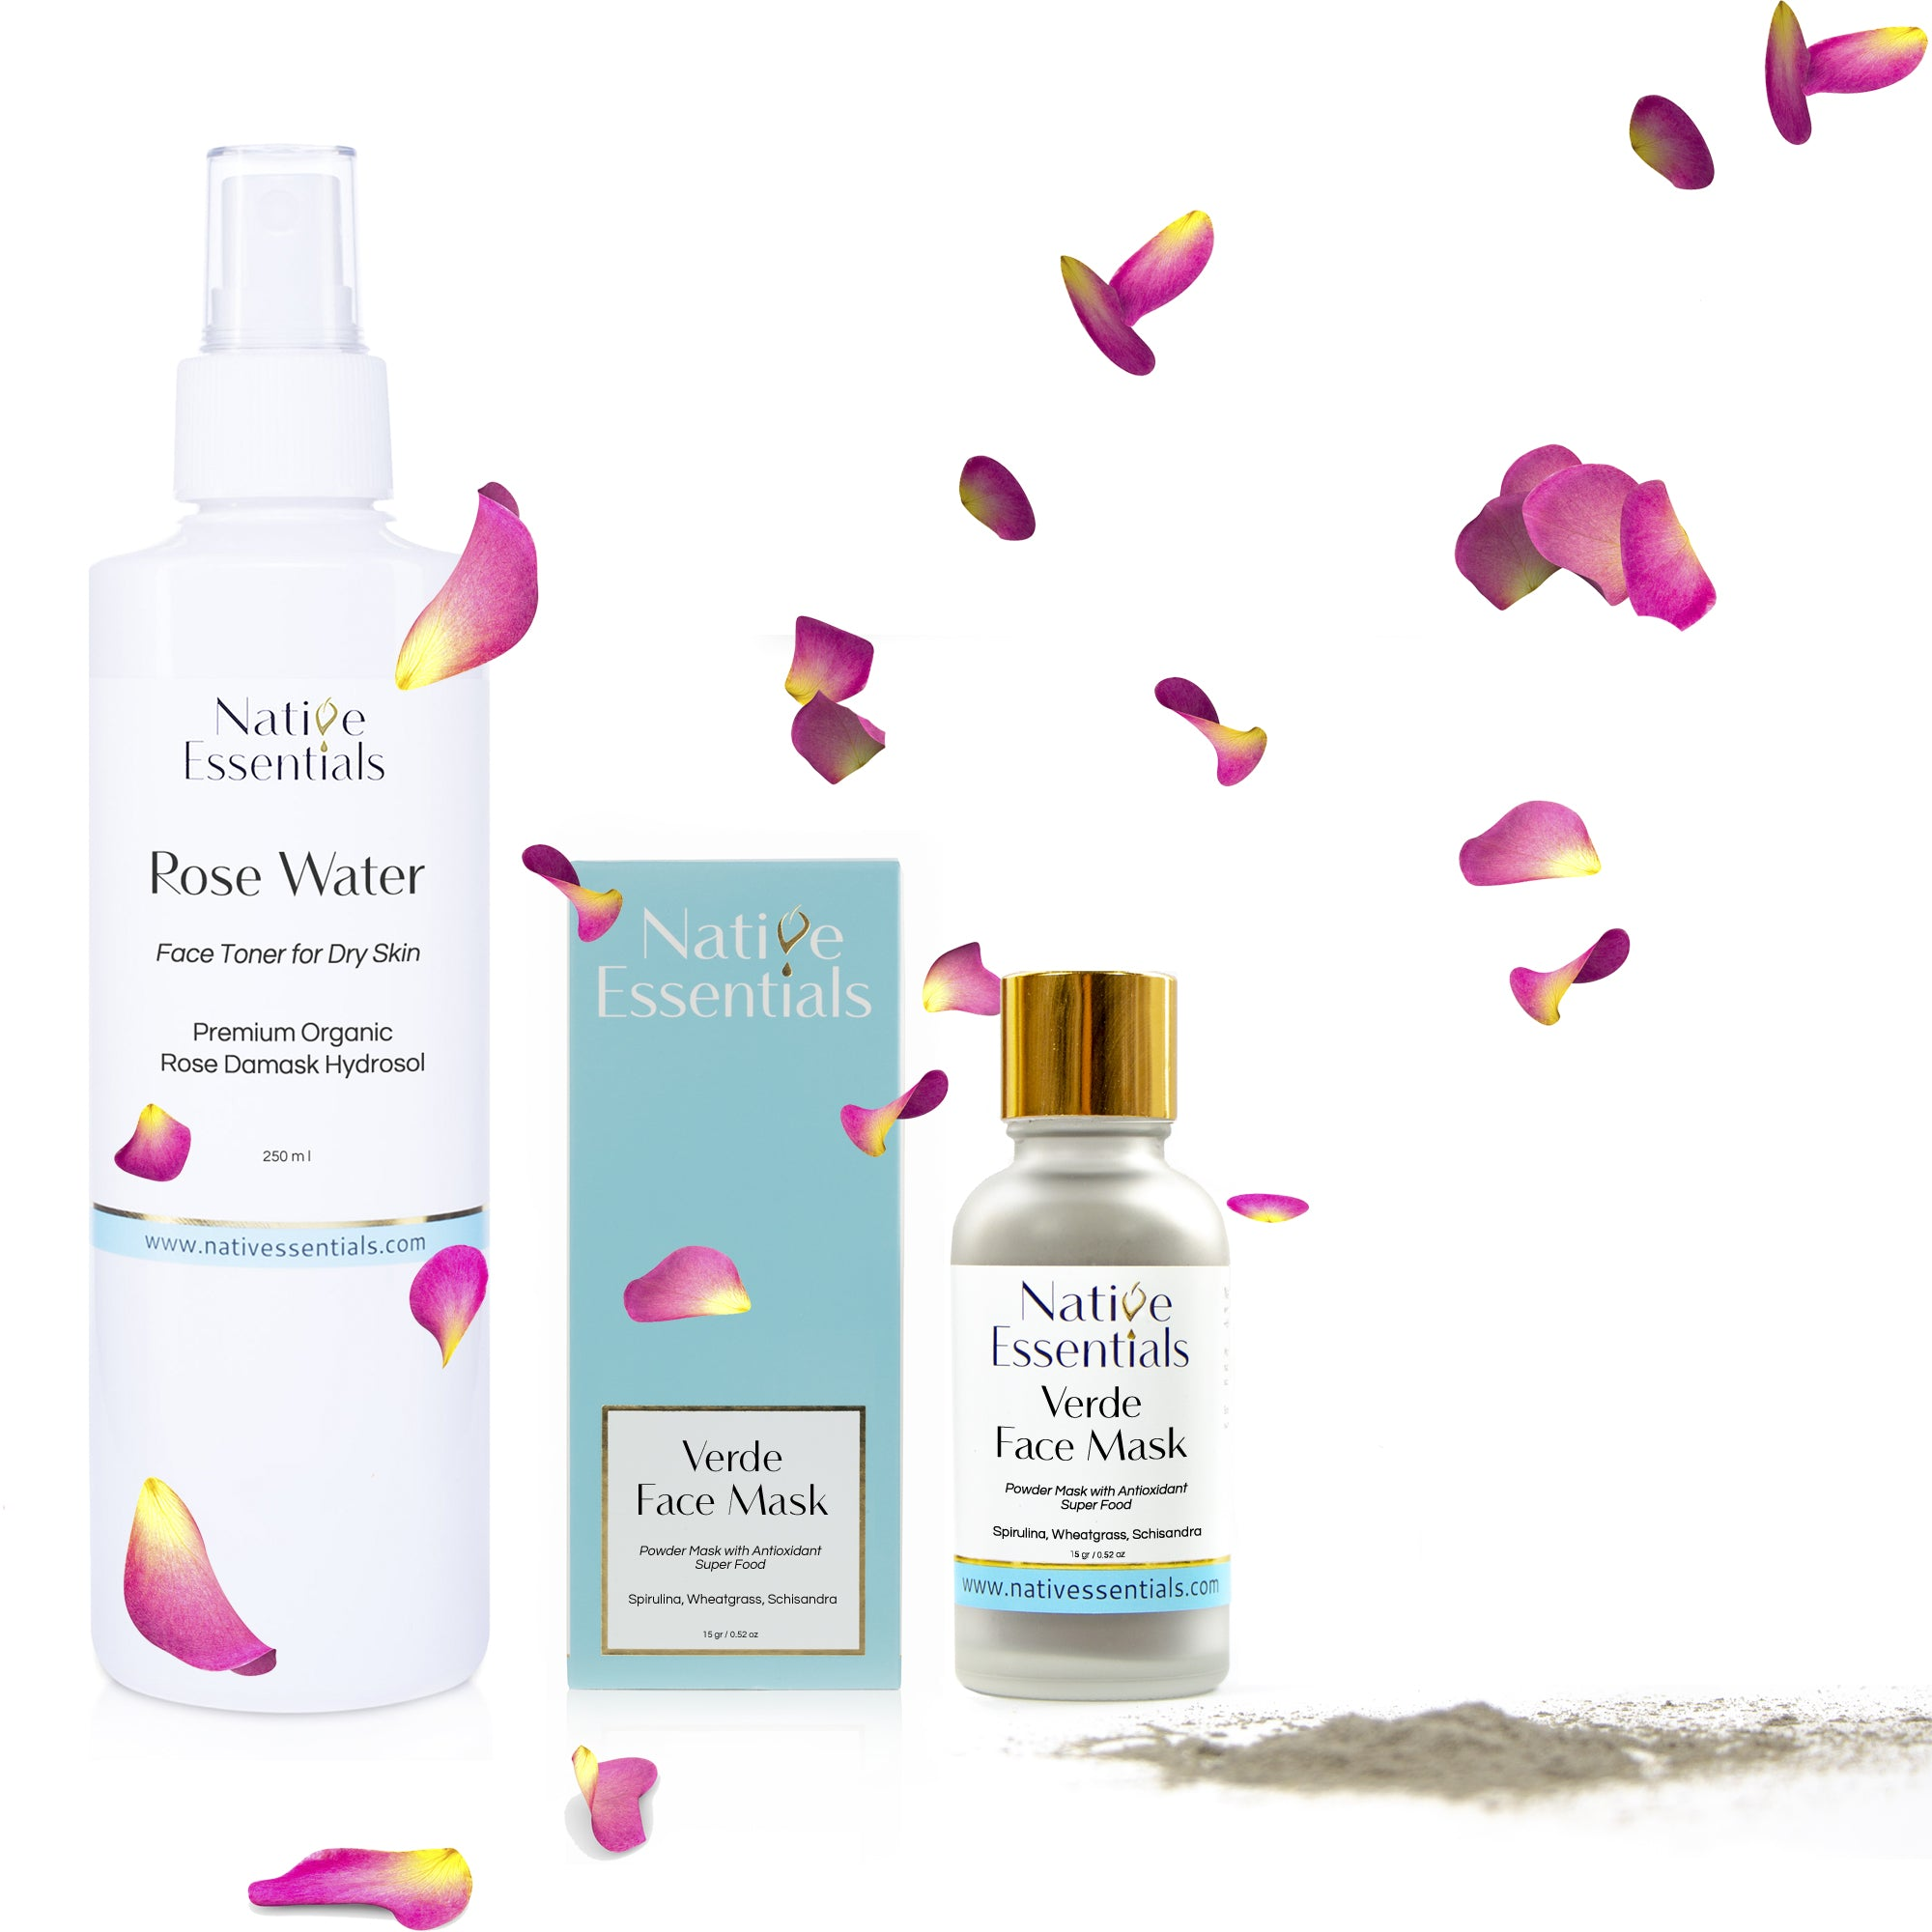 Rose Water and Verde Face Mask Set + free gift Lip Mask - Native Essentials